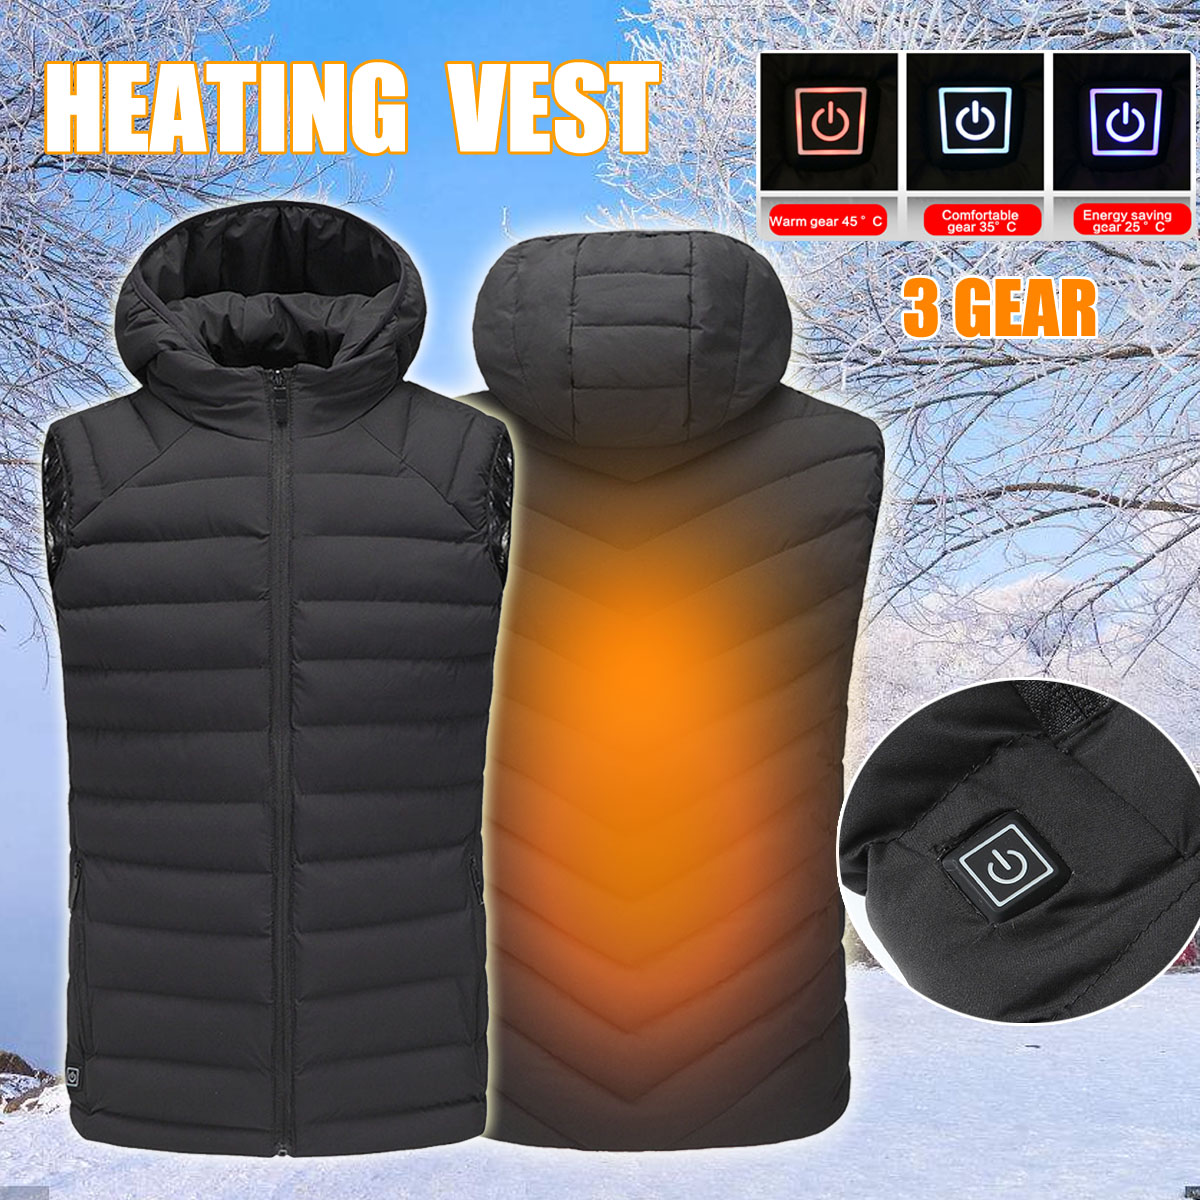 Safurance Mens Winter Safety Vest Heated Vest USB Hooded Work Jacket Safety Work Adjustable Temperature Control Clothes mens winter heated usb charge hooded work jacket coats vest adjustable temperature control safety clothing